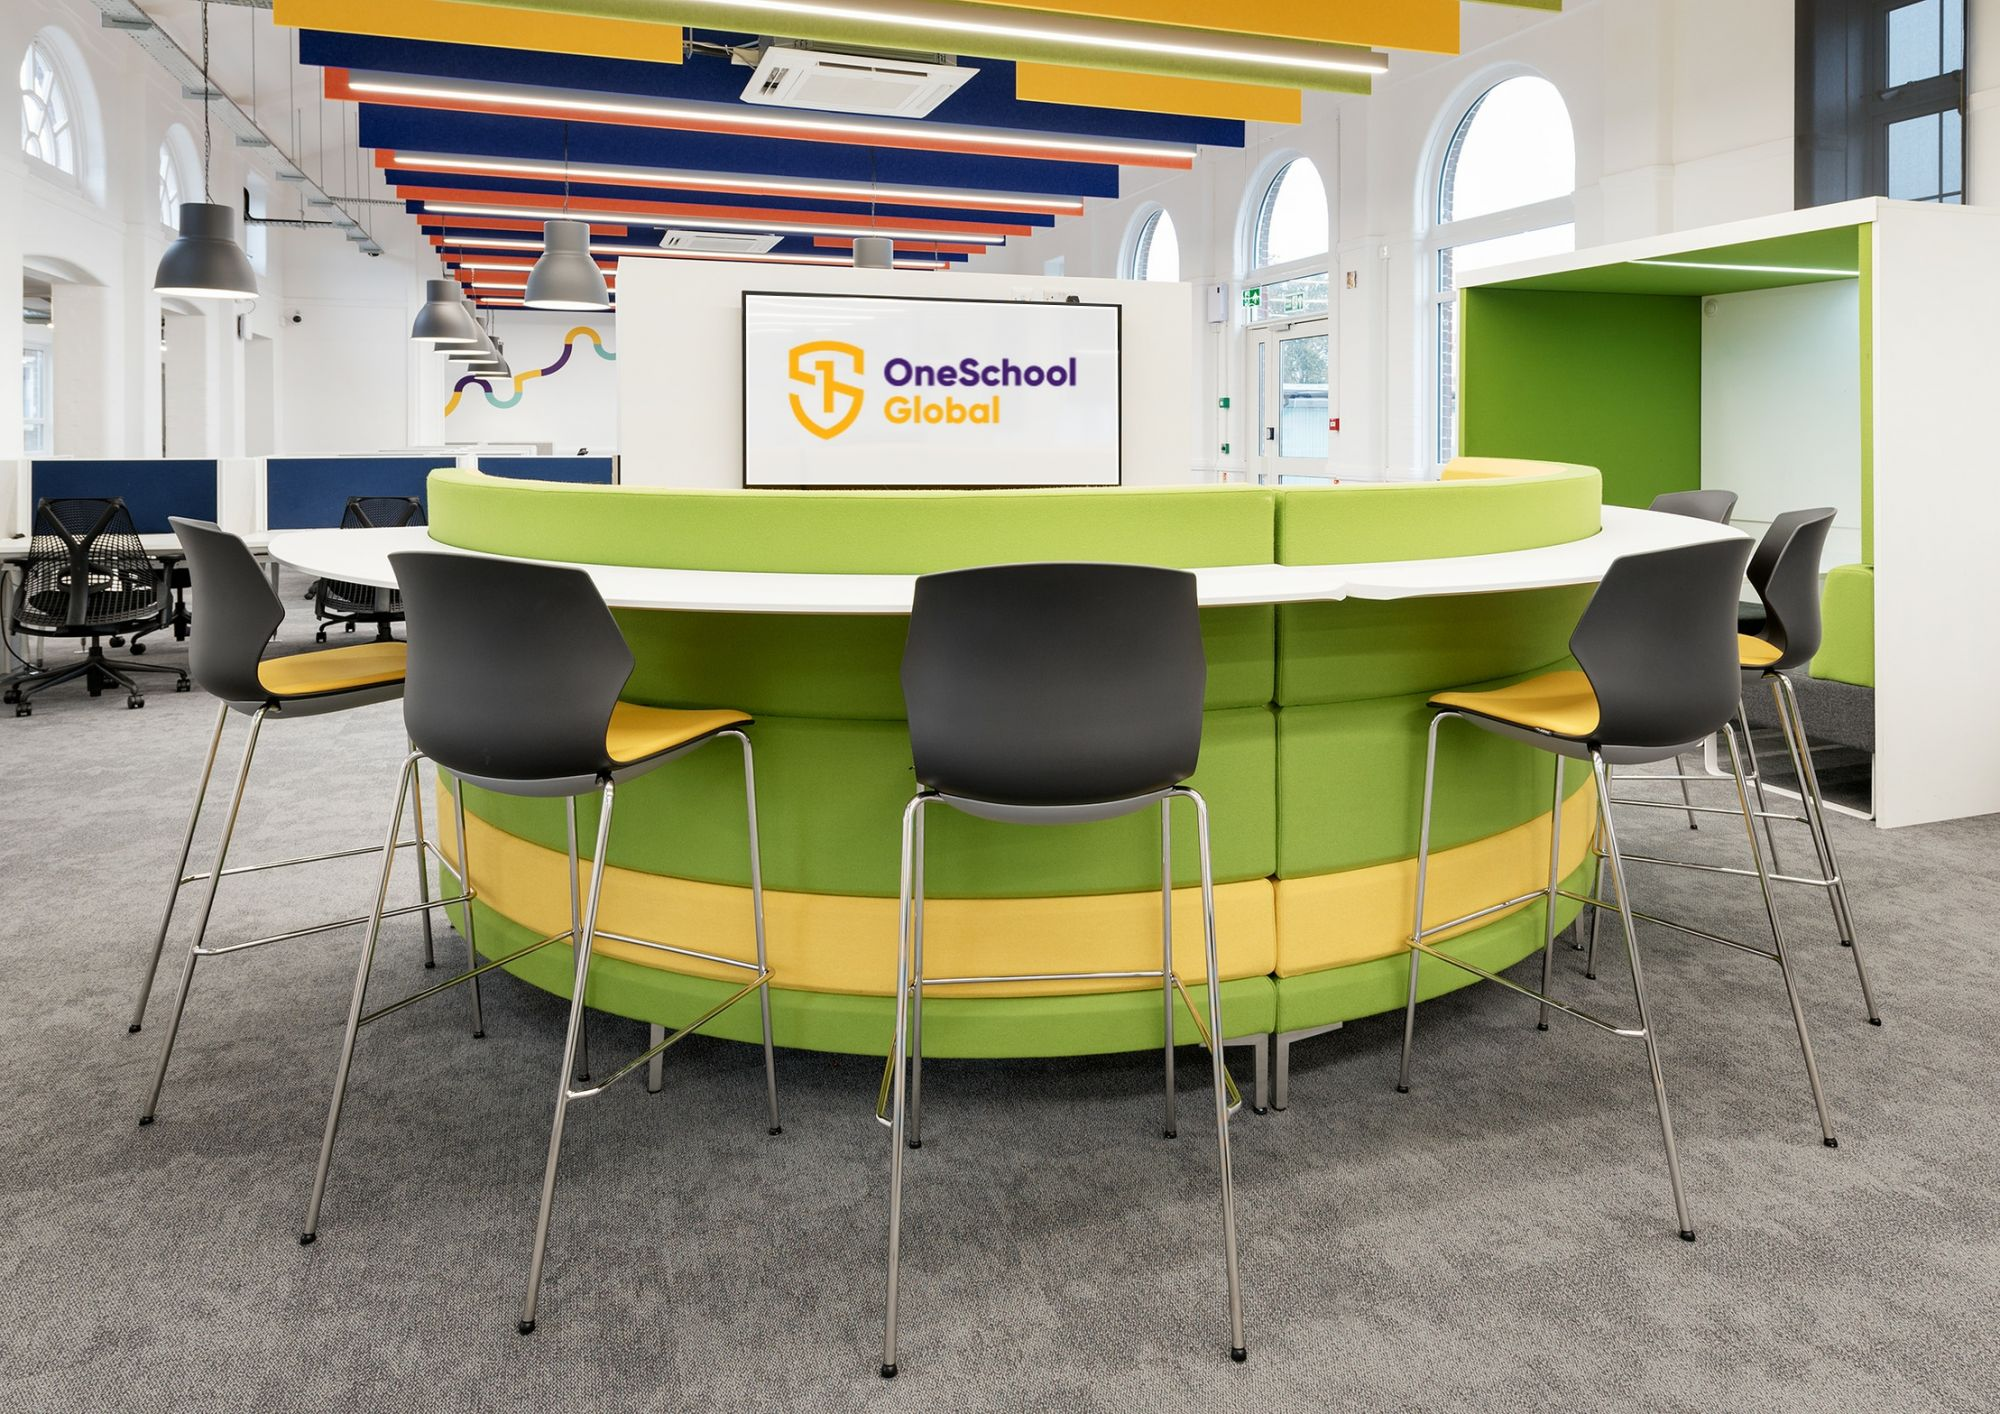 Student dynamic zone chairs and tables